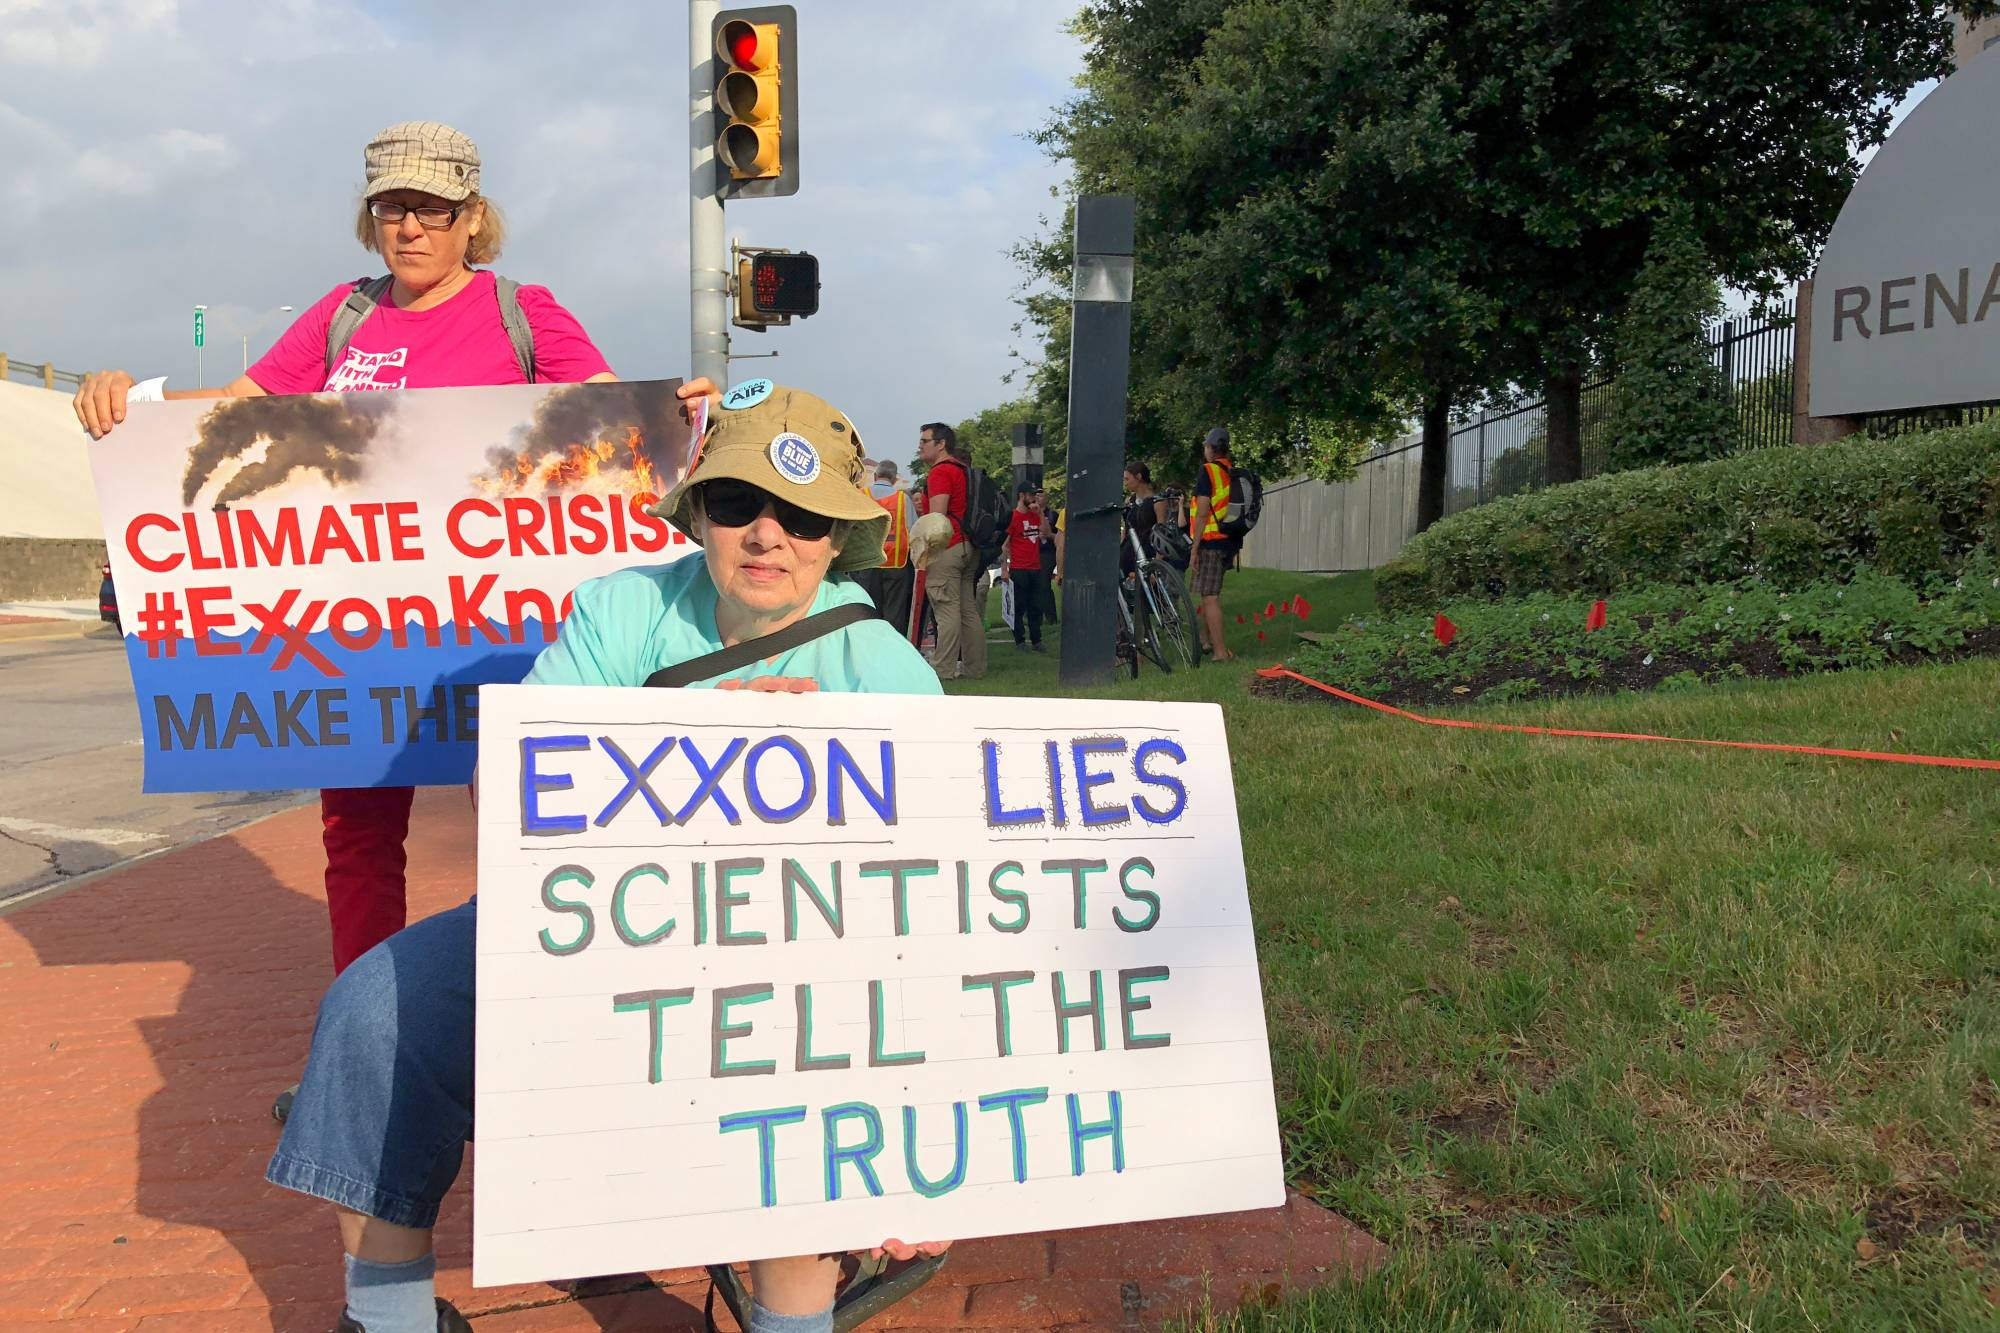 Activists protest against Exxon's climate change policies at the ExxonMobil's 2019 annual shareholders meeting in Dallas, Texas, in May 2019.  | REUTERS